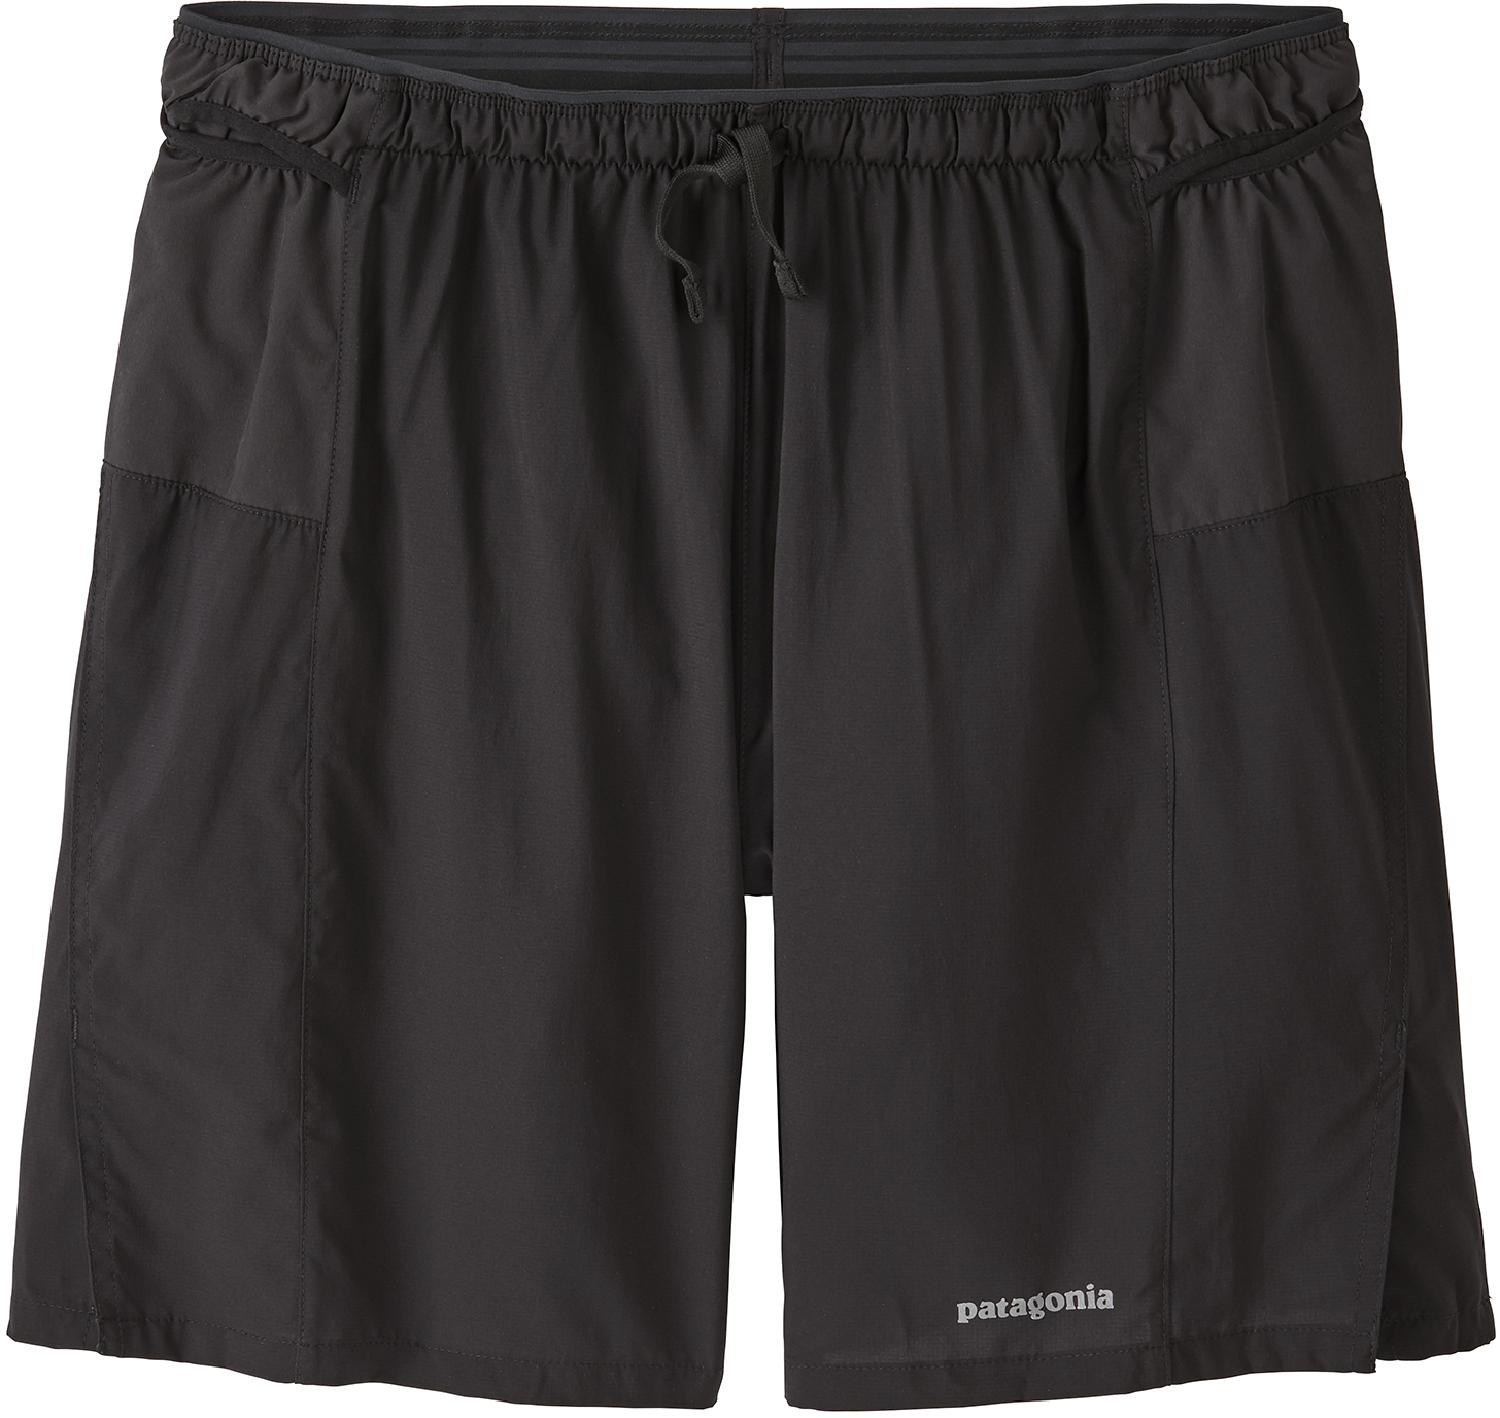 Patagonia Strider Pro Shorts - Men's 7